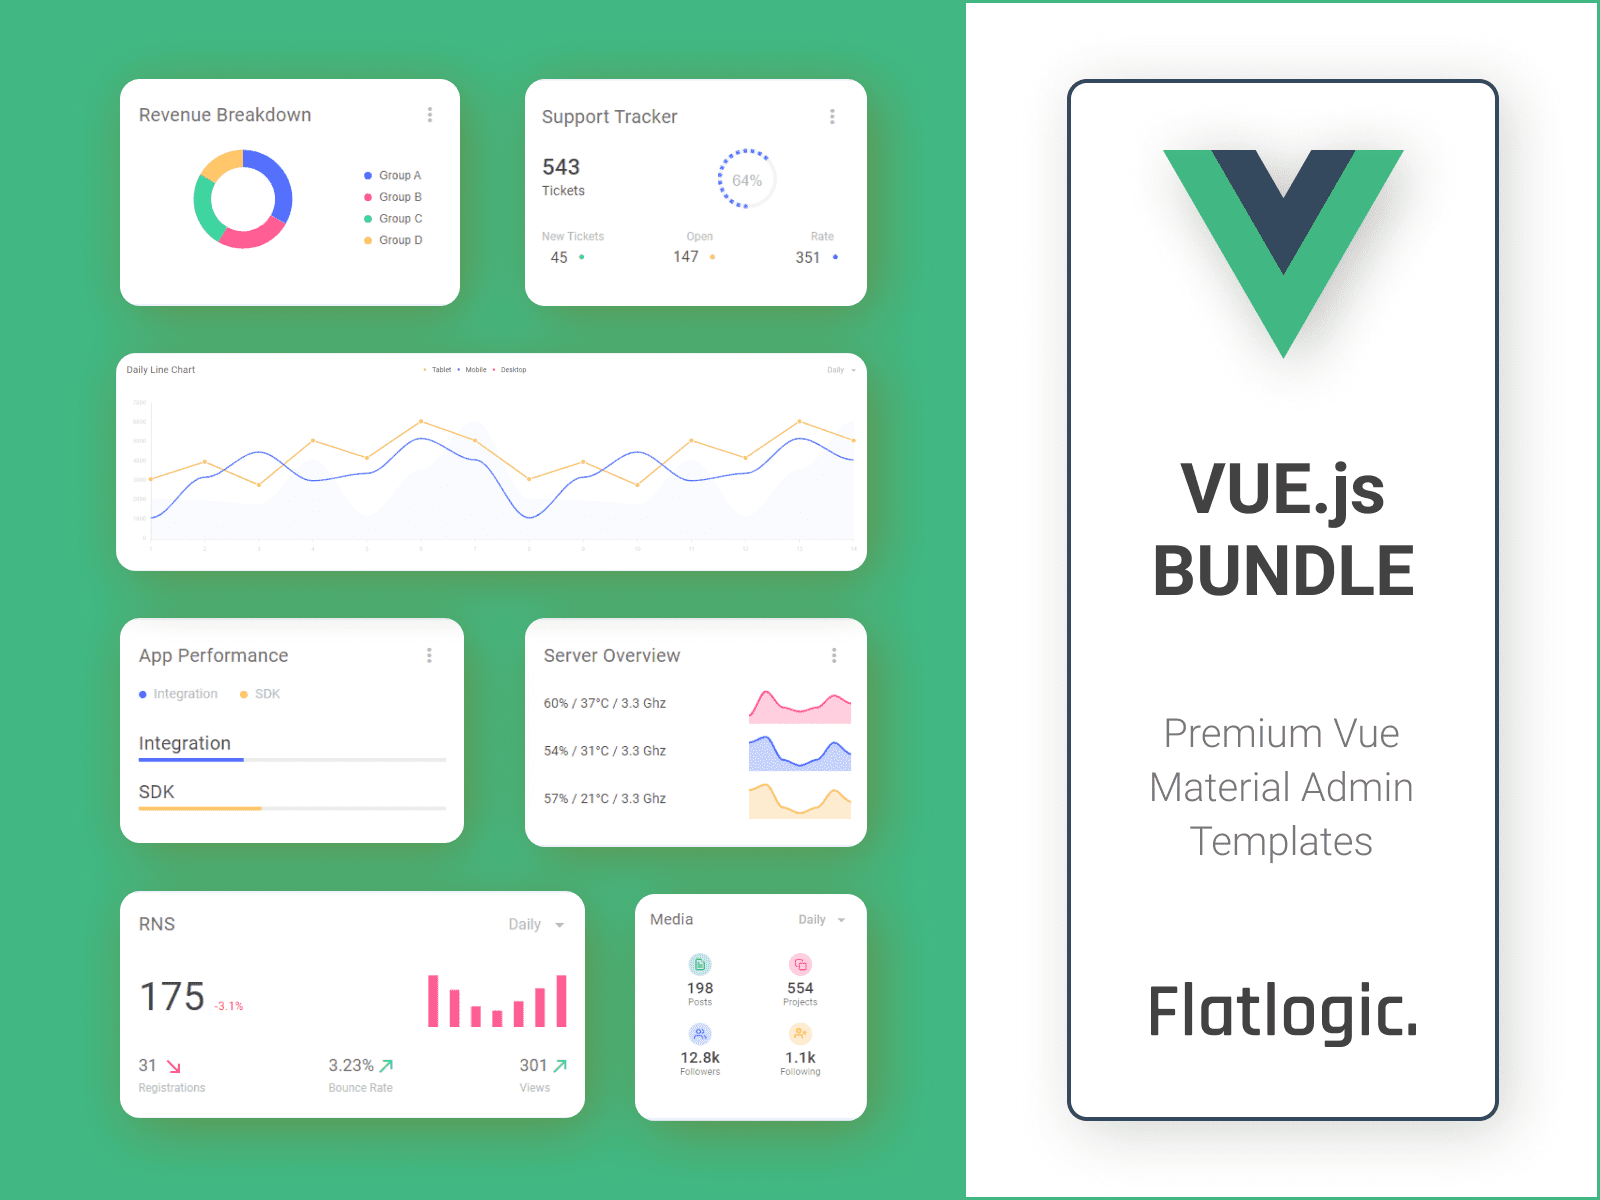 Flatlogic Team has Released the Vue.js Bundle!